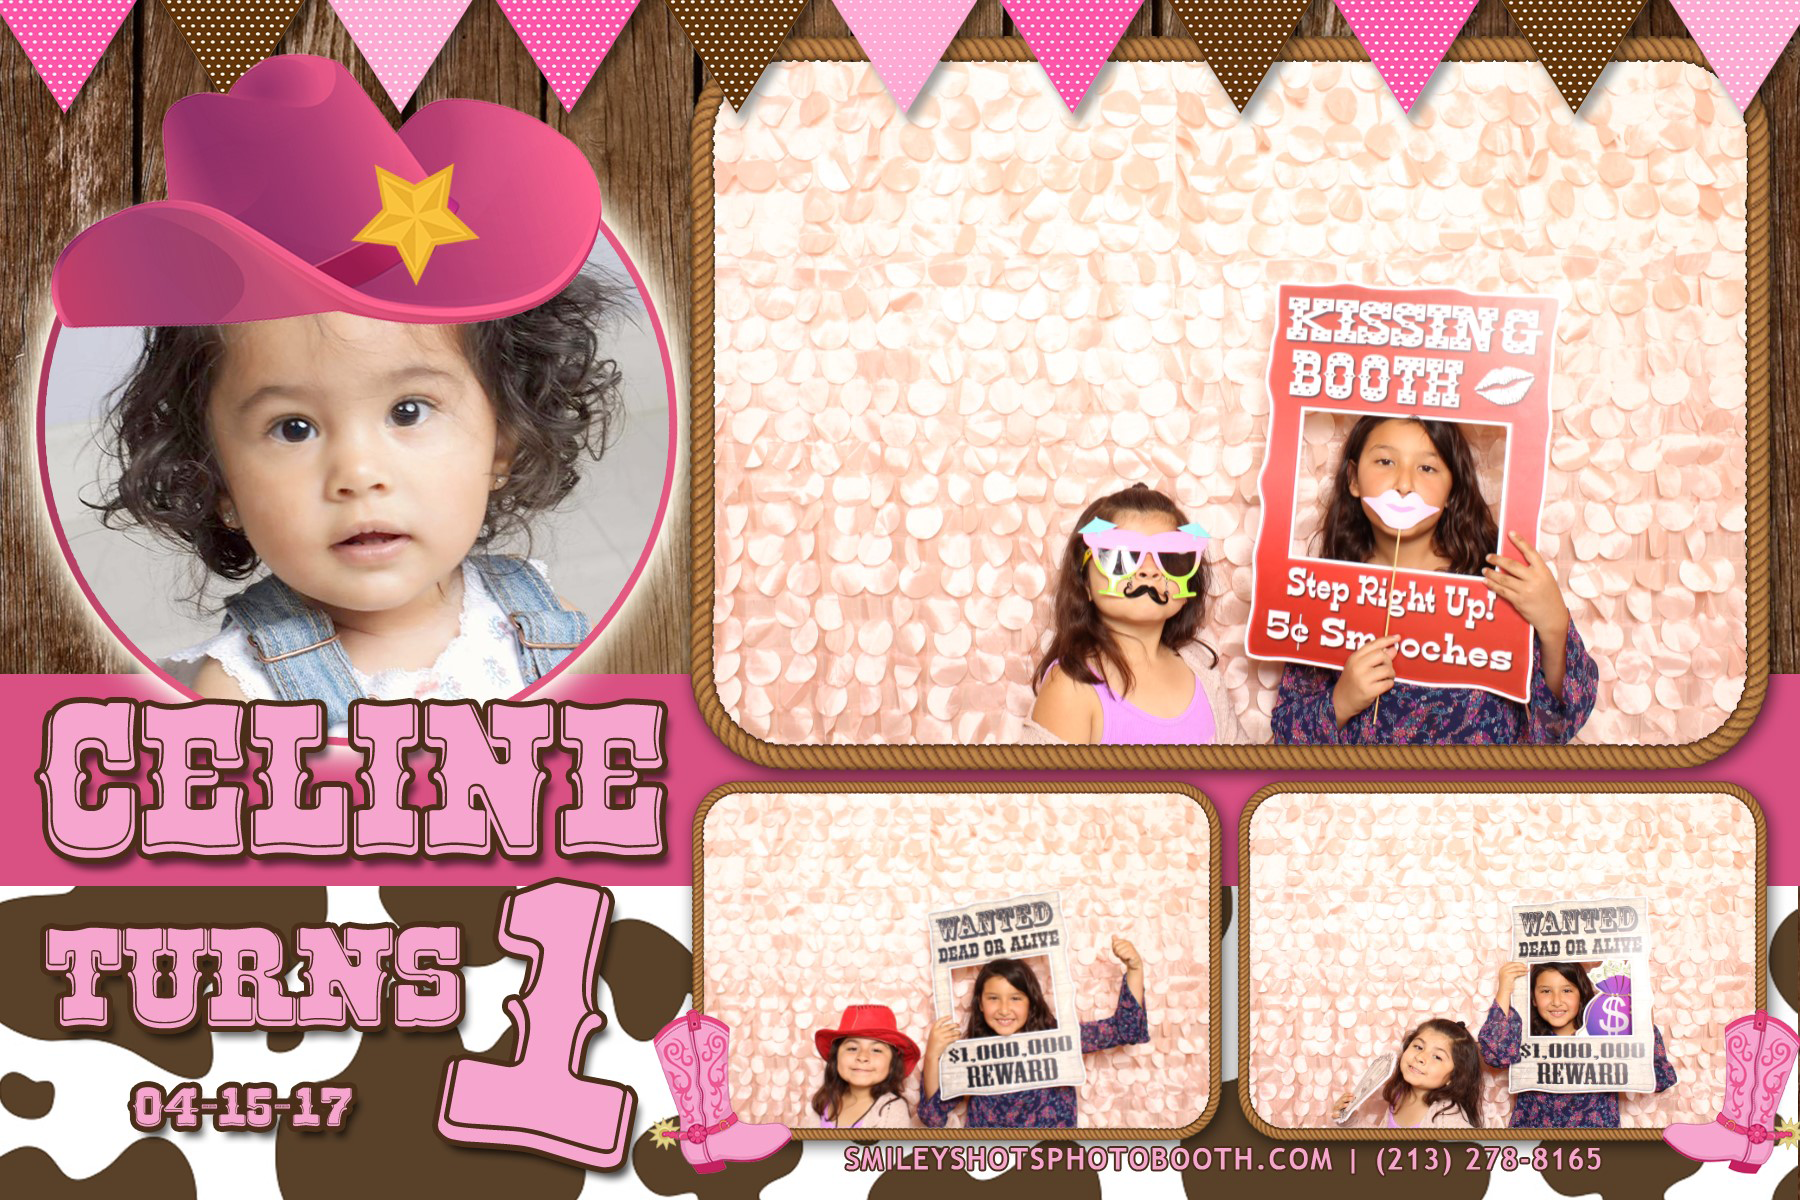 Celine turns 1 Smiley Shots Photo Booth Photobooth (43).png